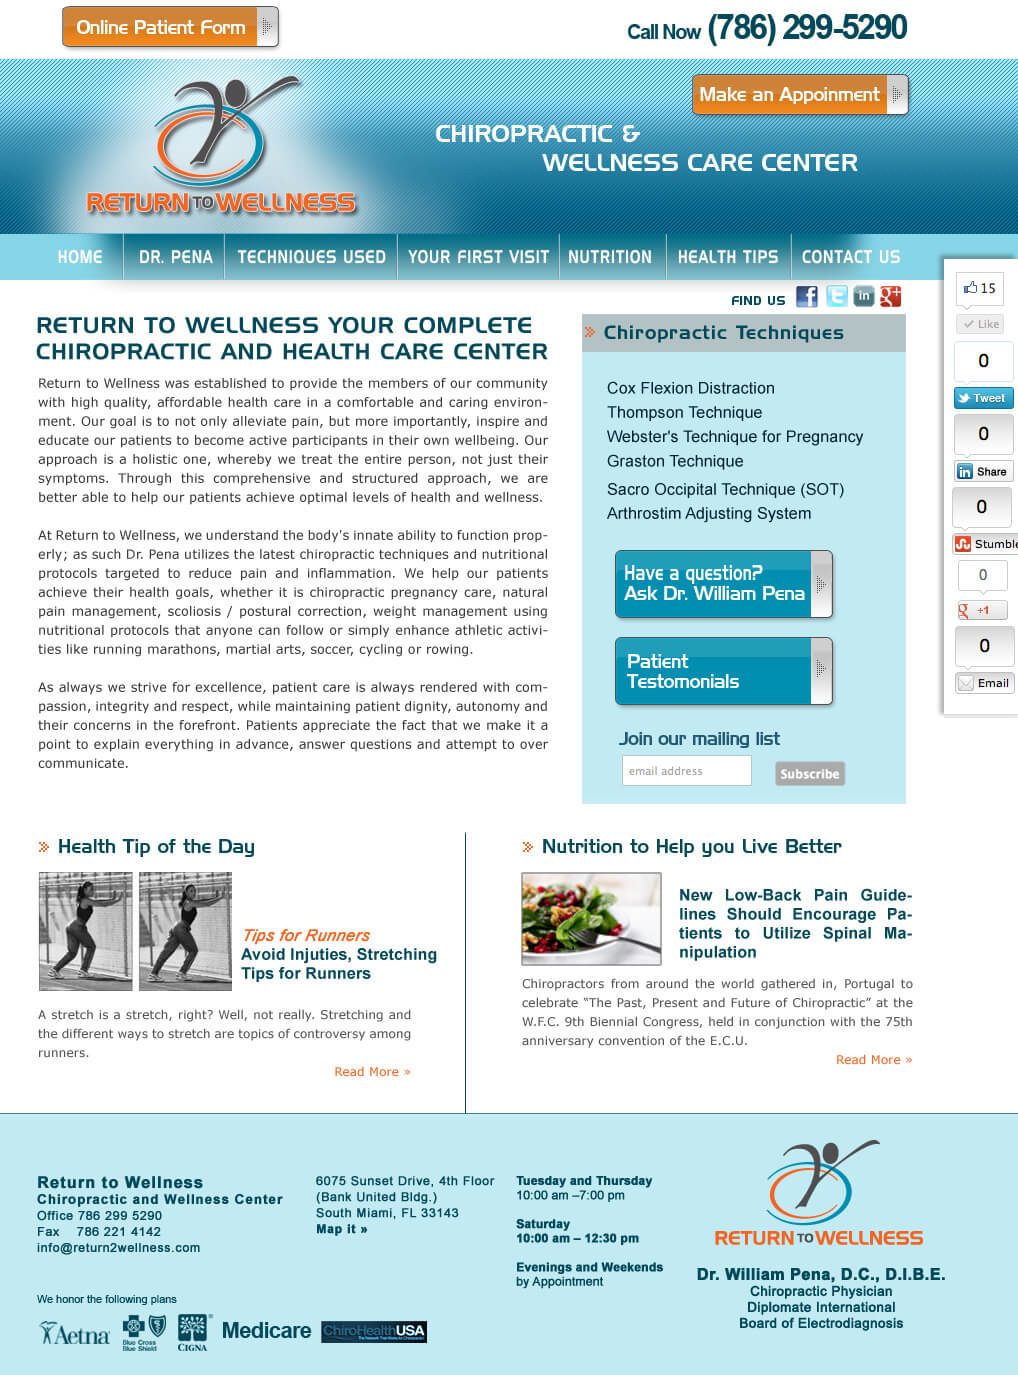 Chiropractor and Wellness Center Medial Web Site design and Basic SEO.